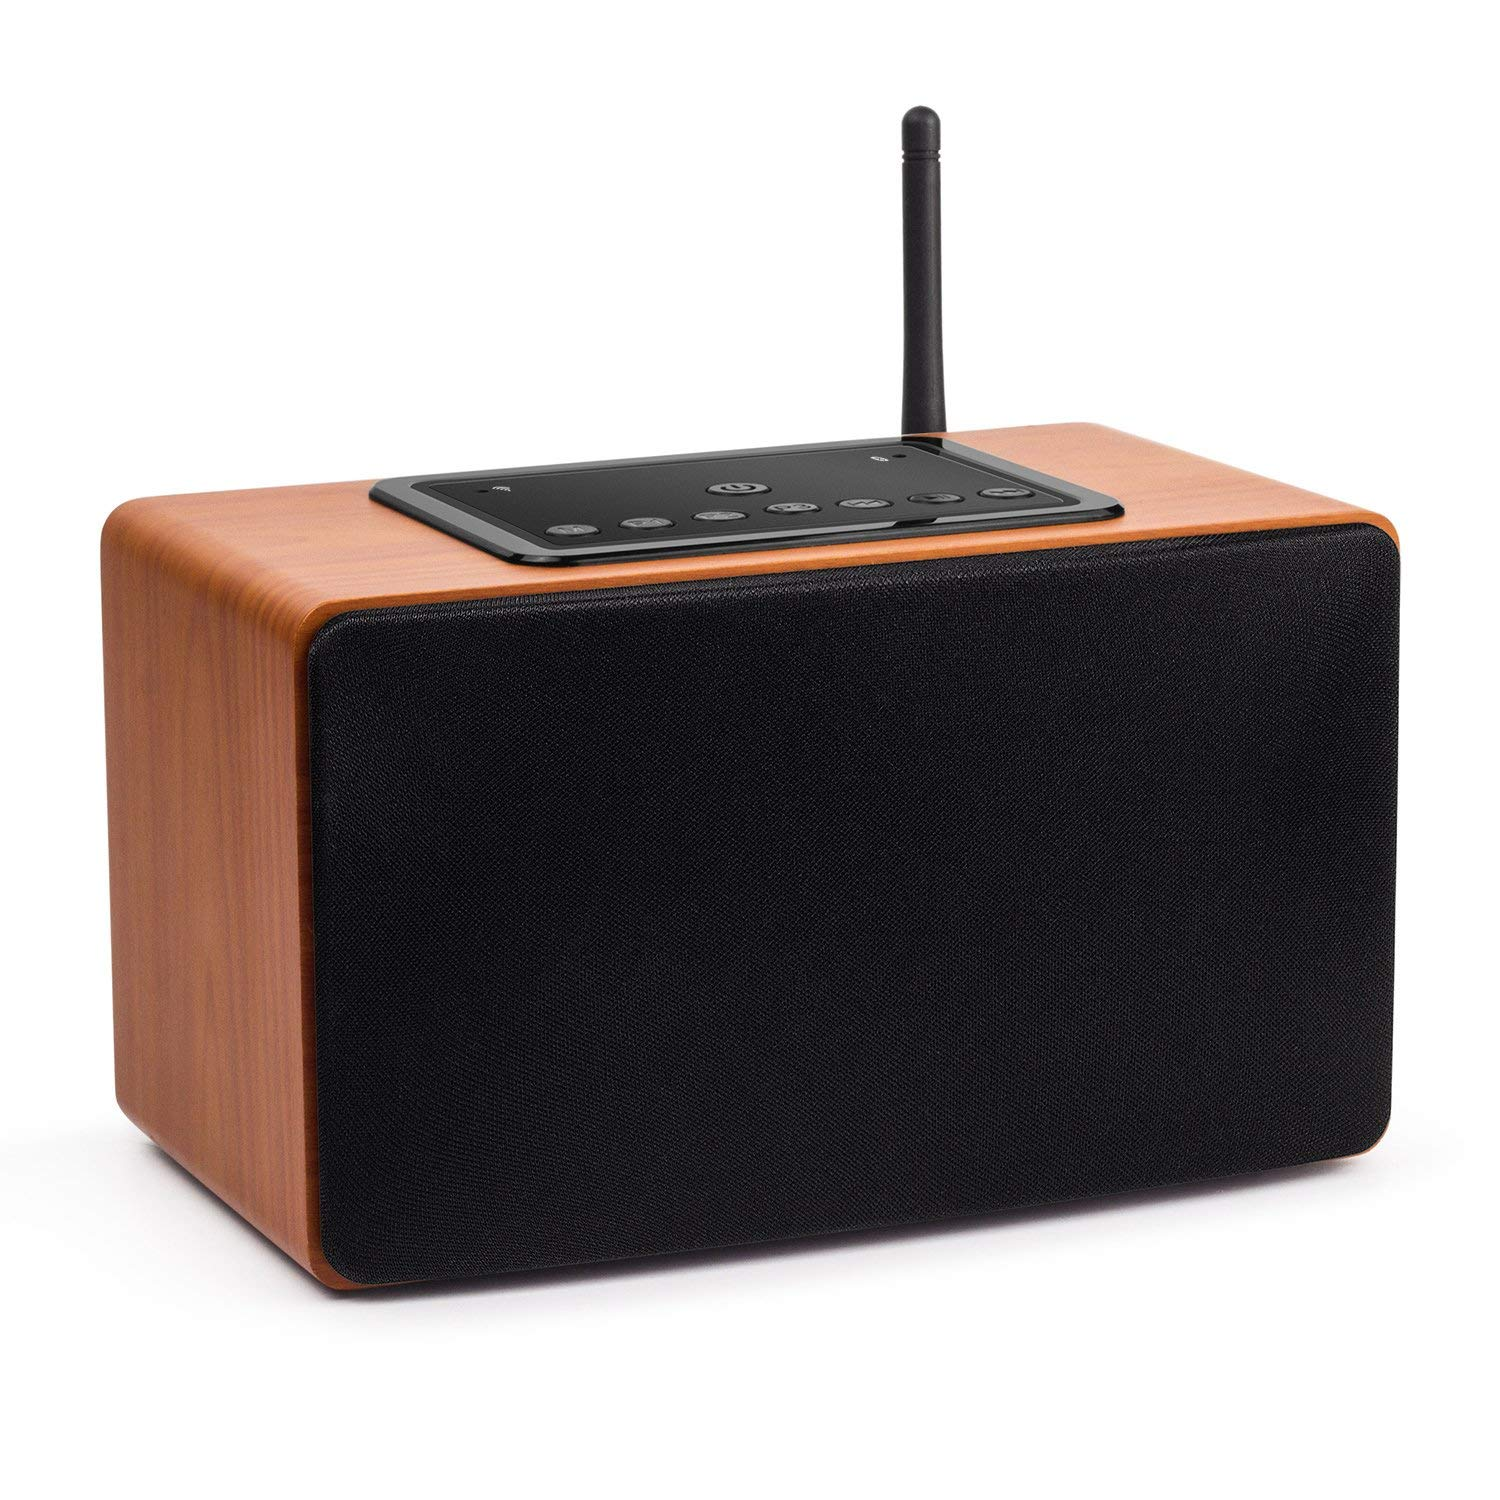 Radio Küche Wlan Portable Tv, Portable Freeview Digital Tv, Handheld Tv, Bluetooth Speakers, Bluetooth Headphones, Bluetooth Receiver, Bluetooth Dab Radio, Clock Radio, Tv Aerial